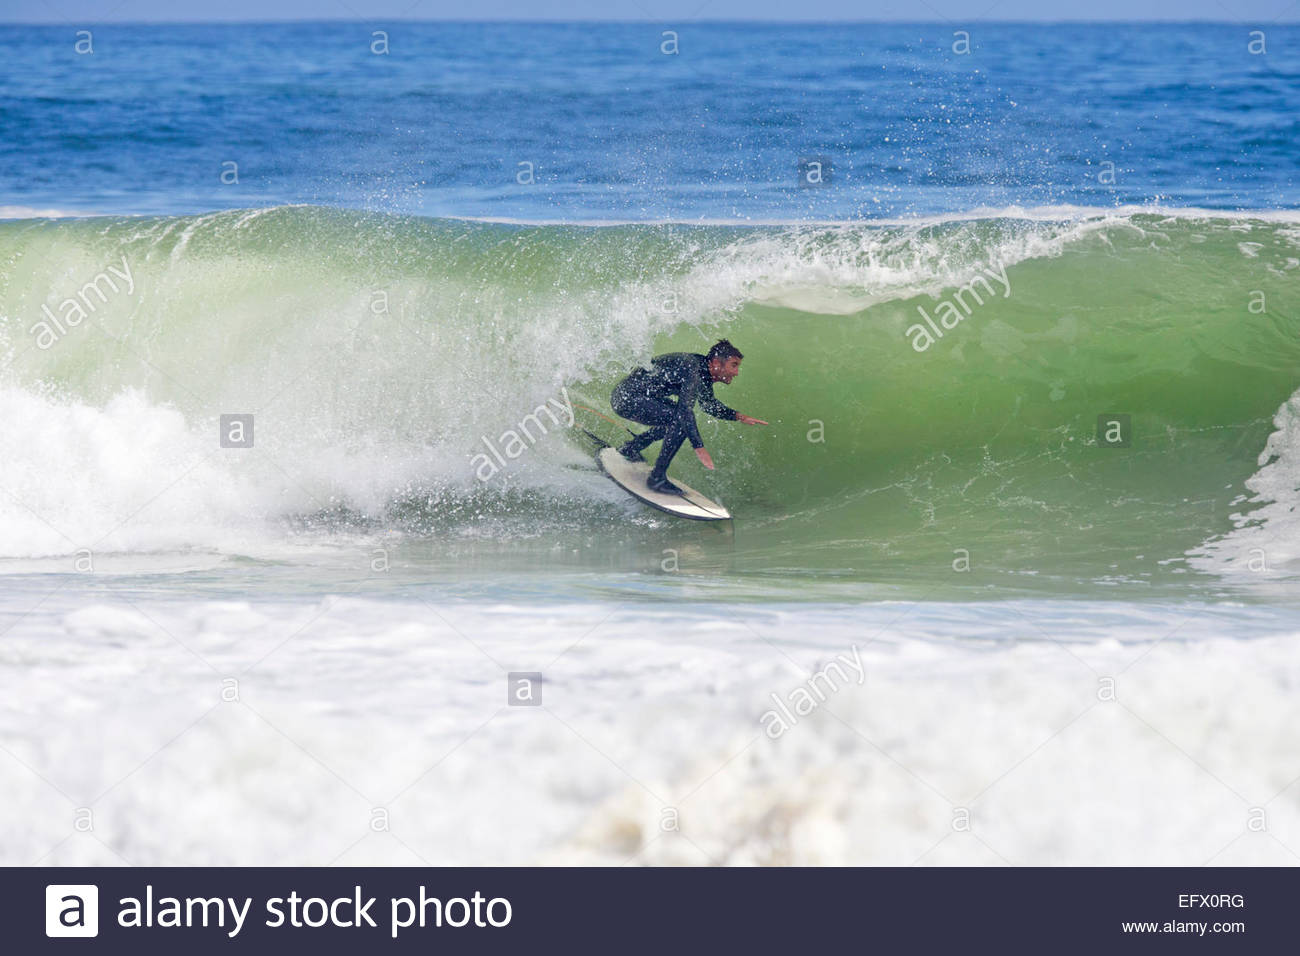 Circonscription Surfer la courbe de grande vague Photo Stock